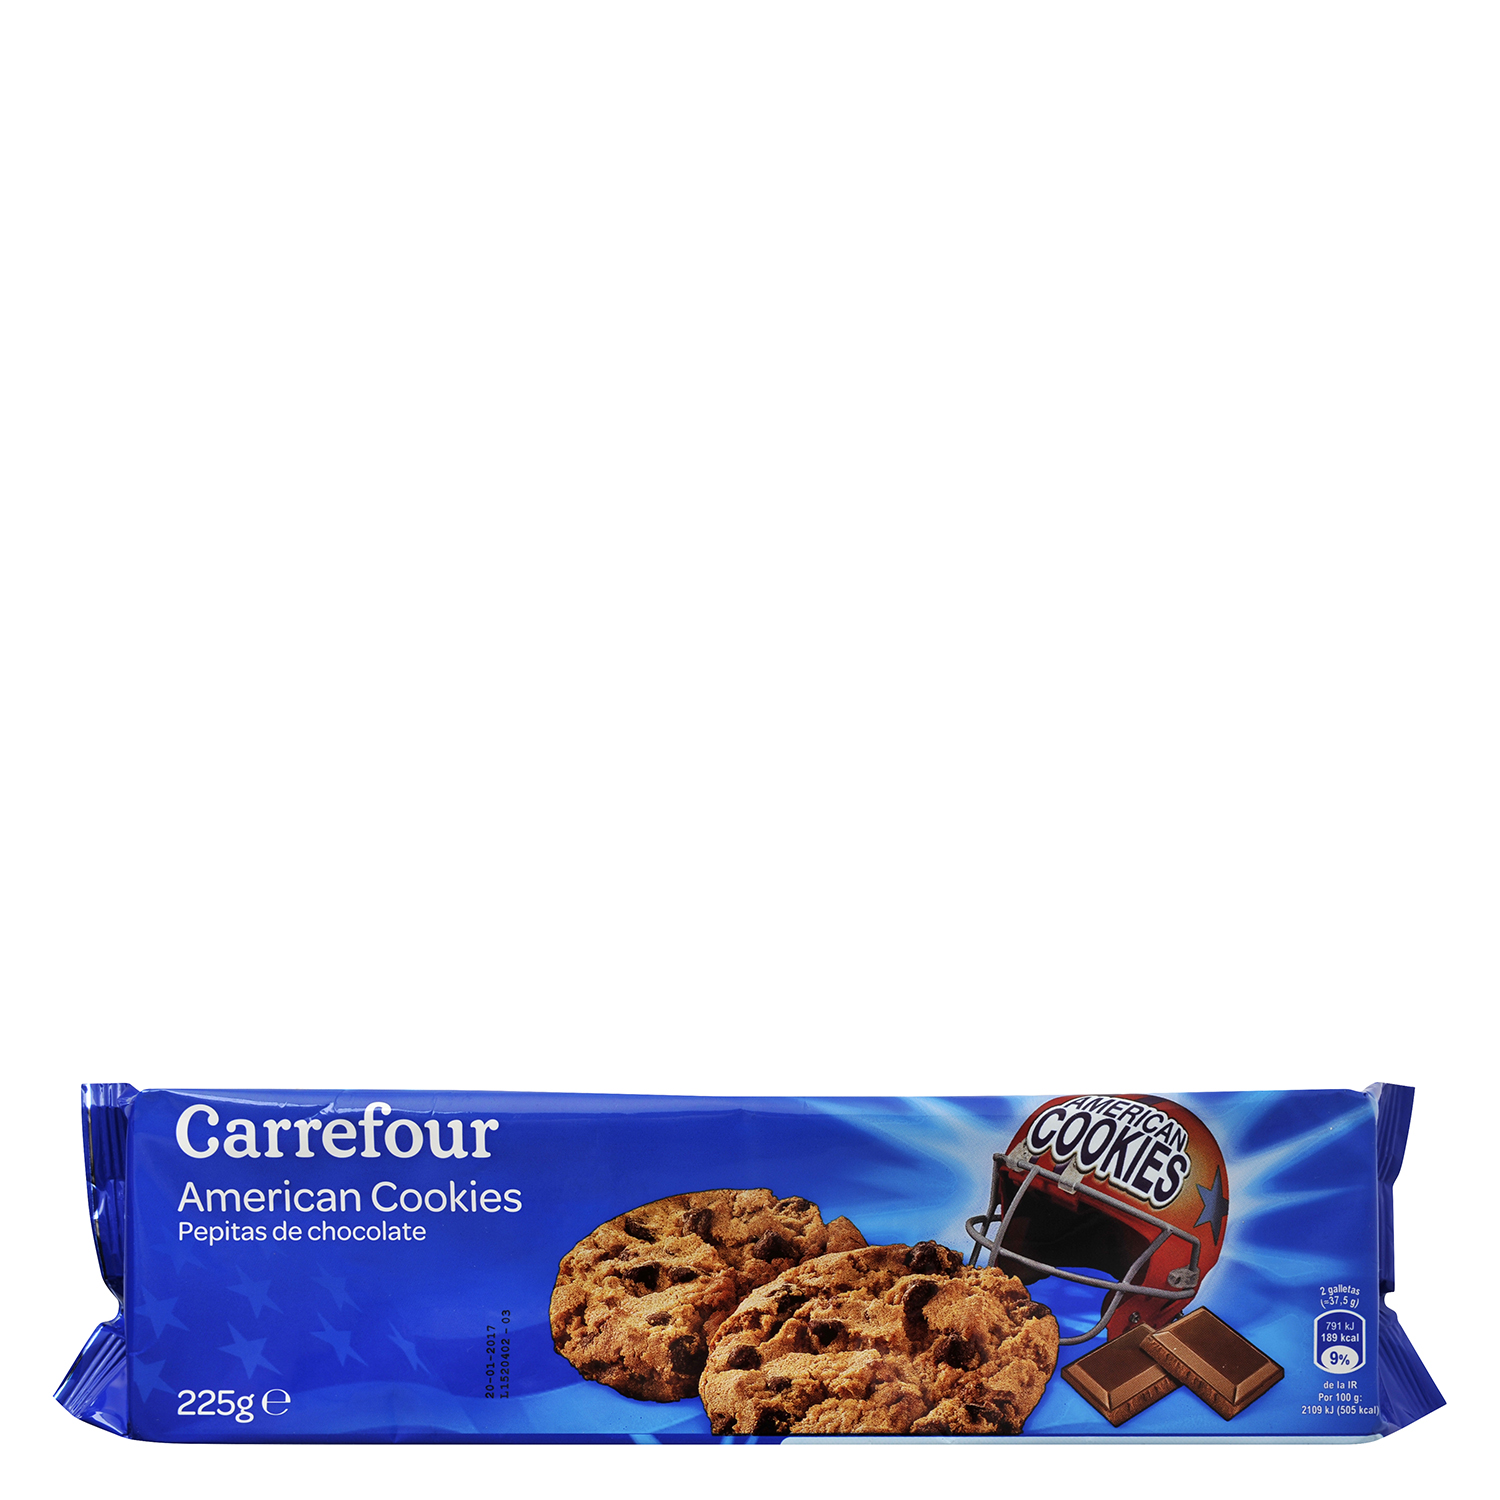 Galletas con pepitas de chocolate Carrefour - Carrefour supermercado ...